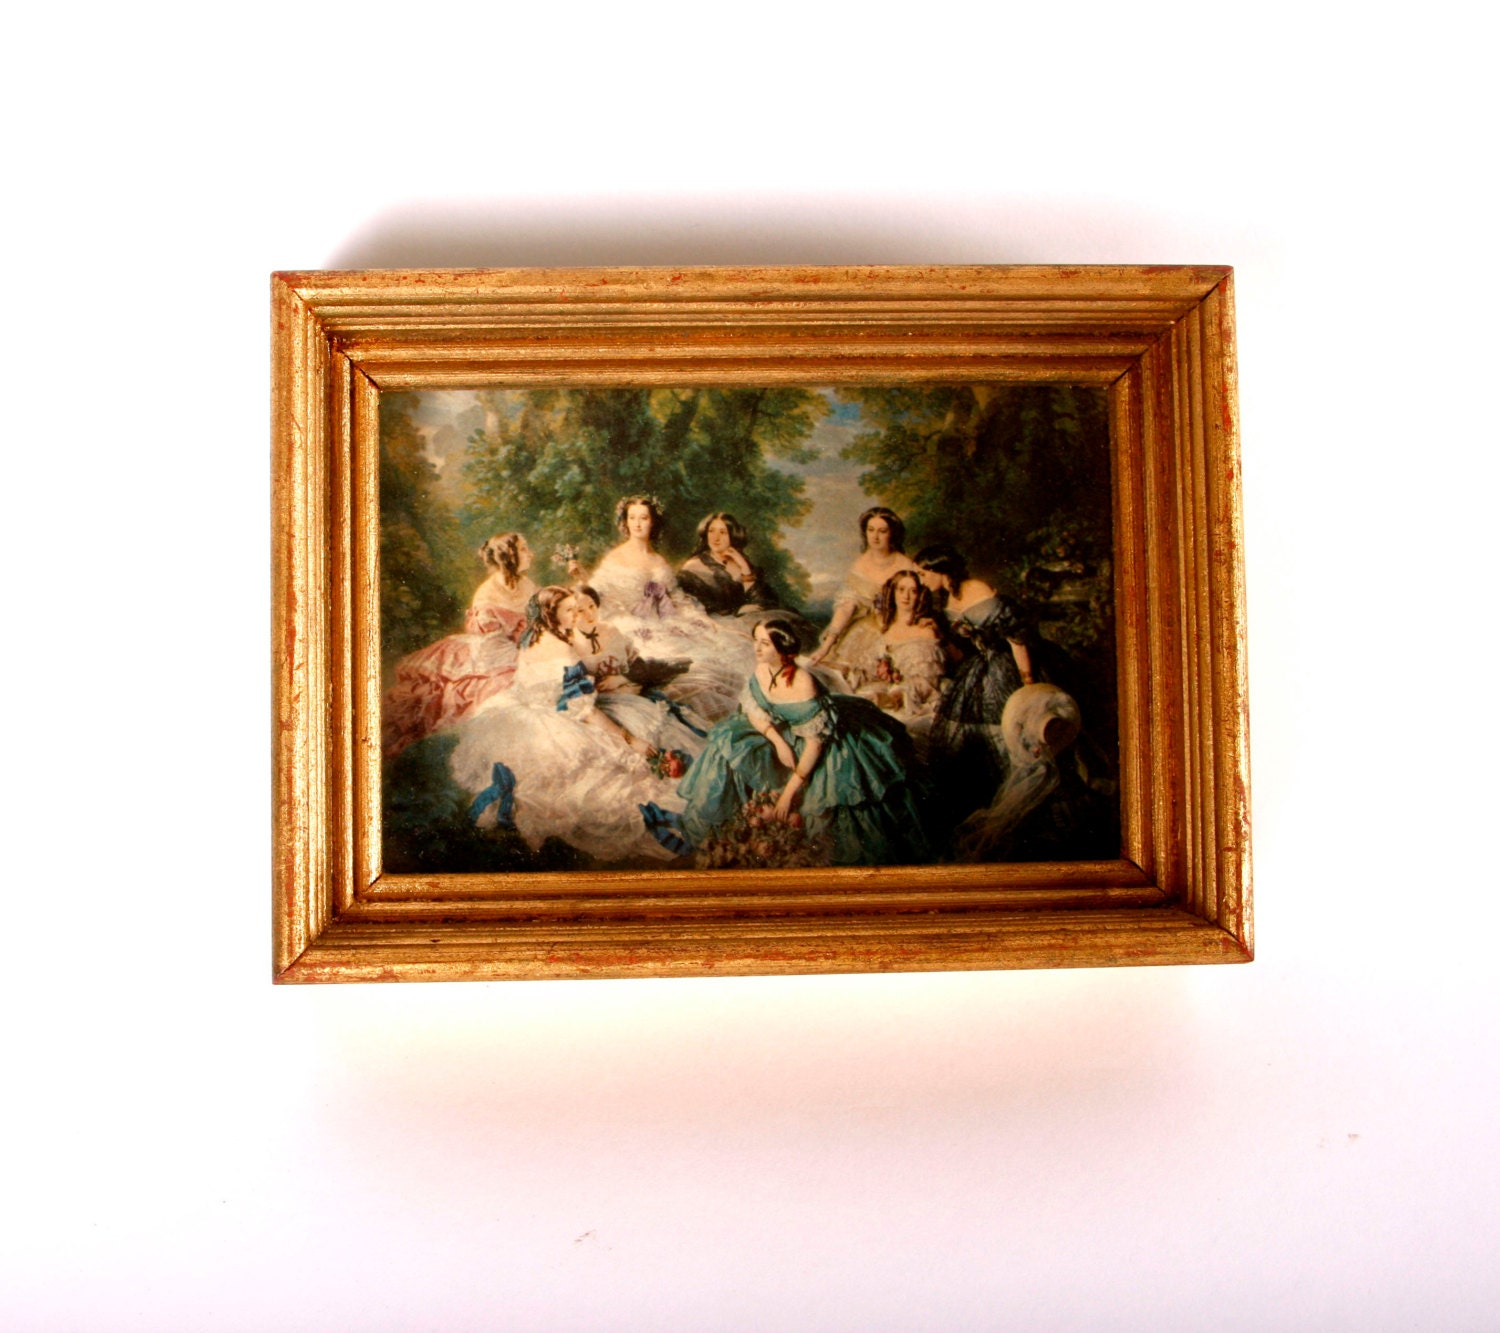 Wall Art Shadow Box : S shadow box framed art victorian by yesterdayand day